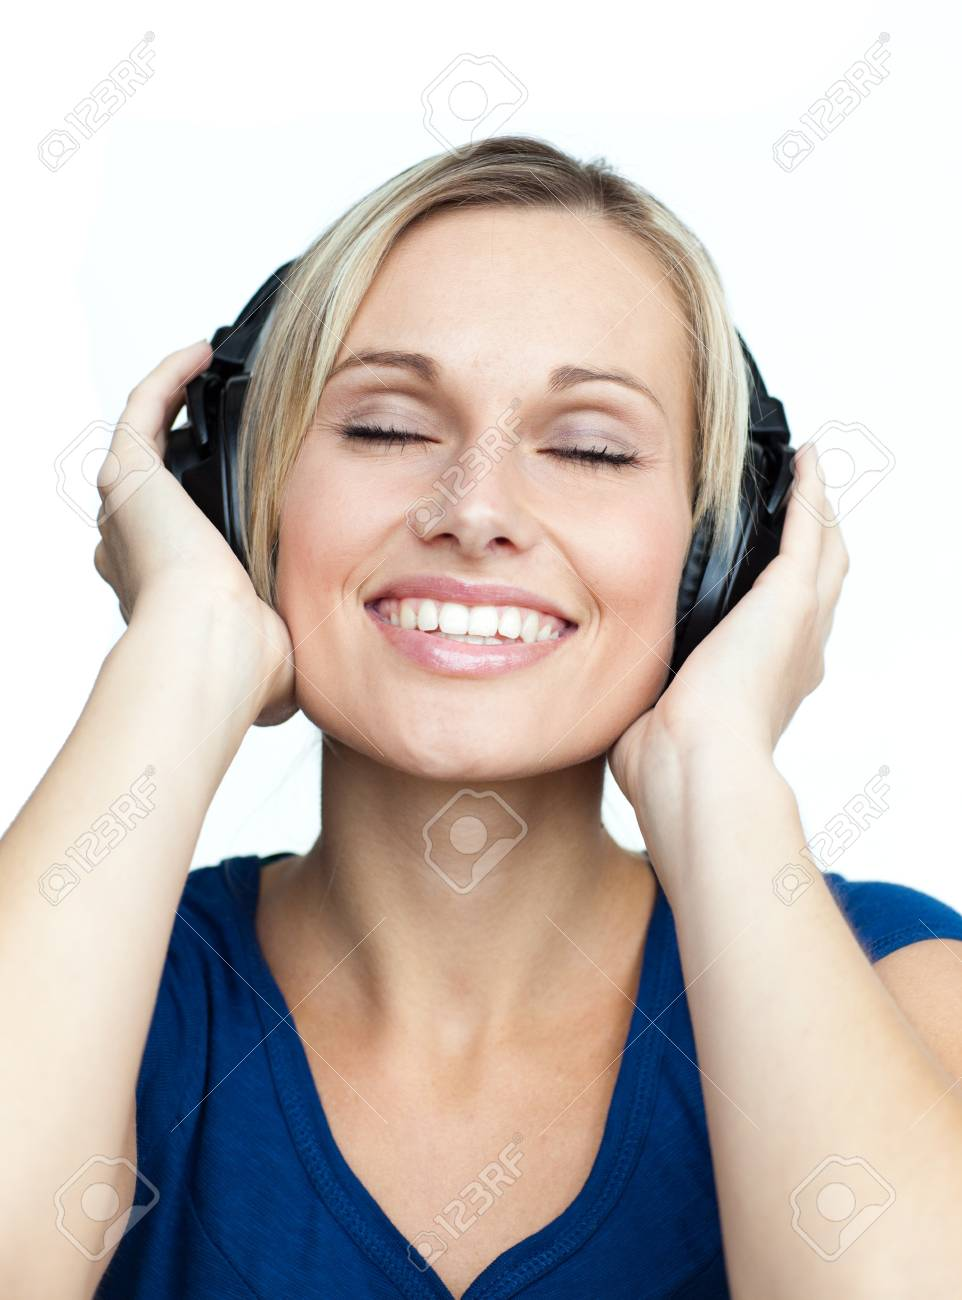 Close-up of woman listening to music with headphones on Stock Photo - 10106969